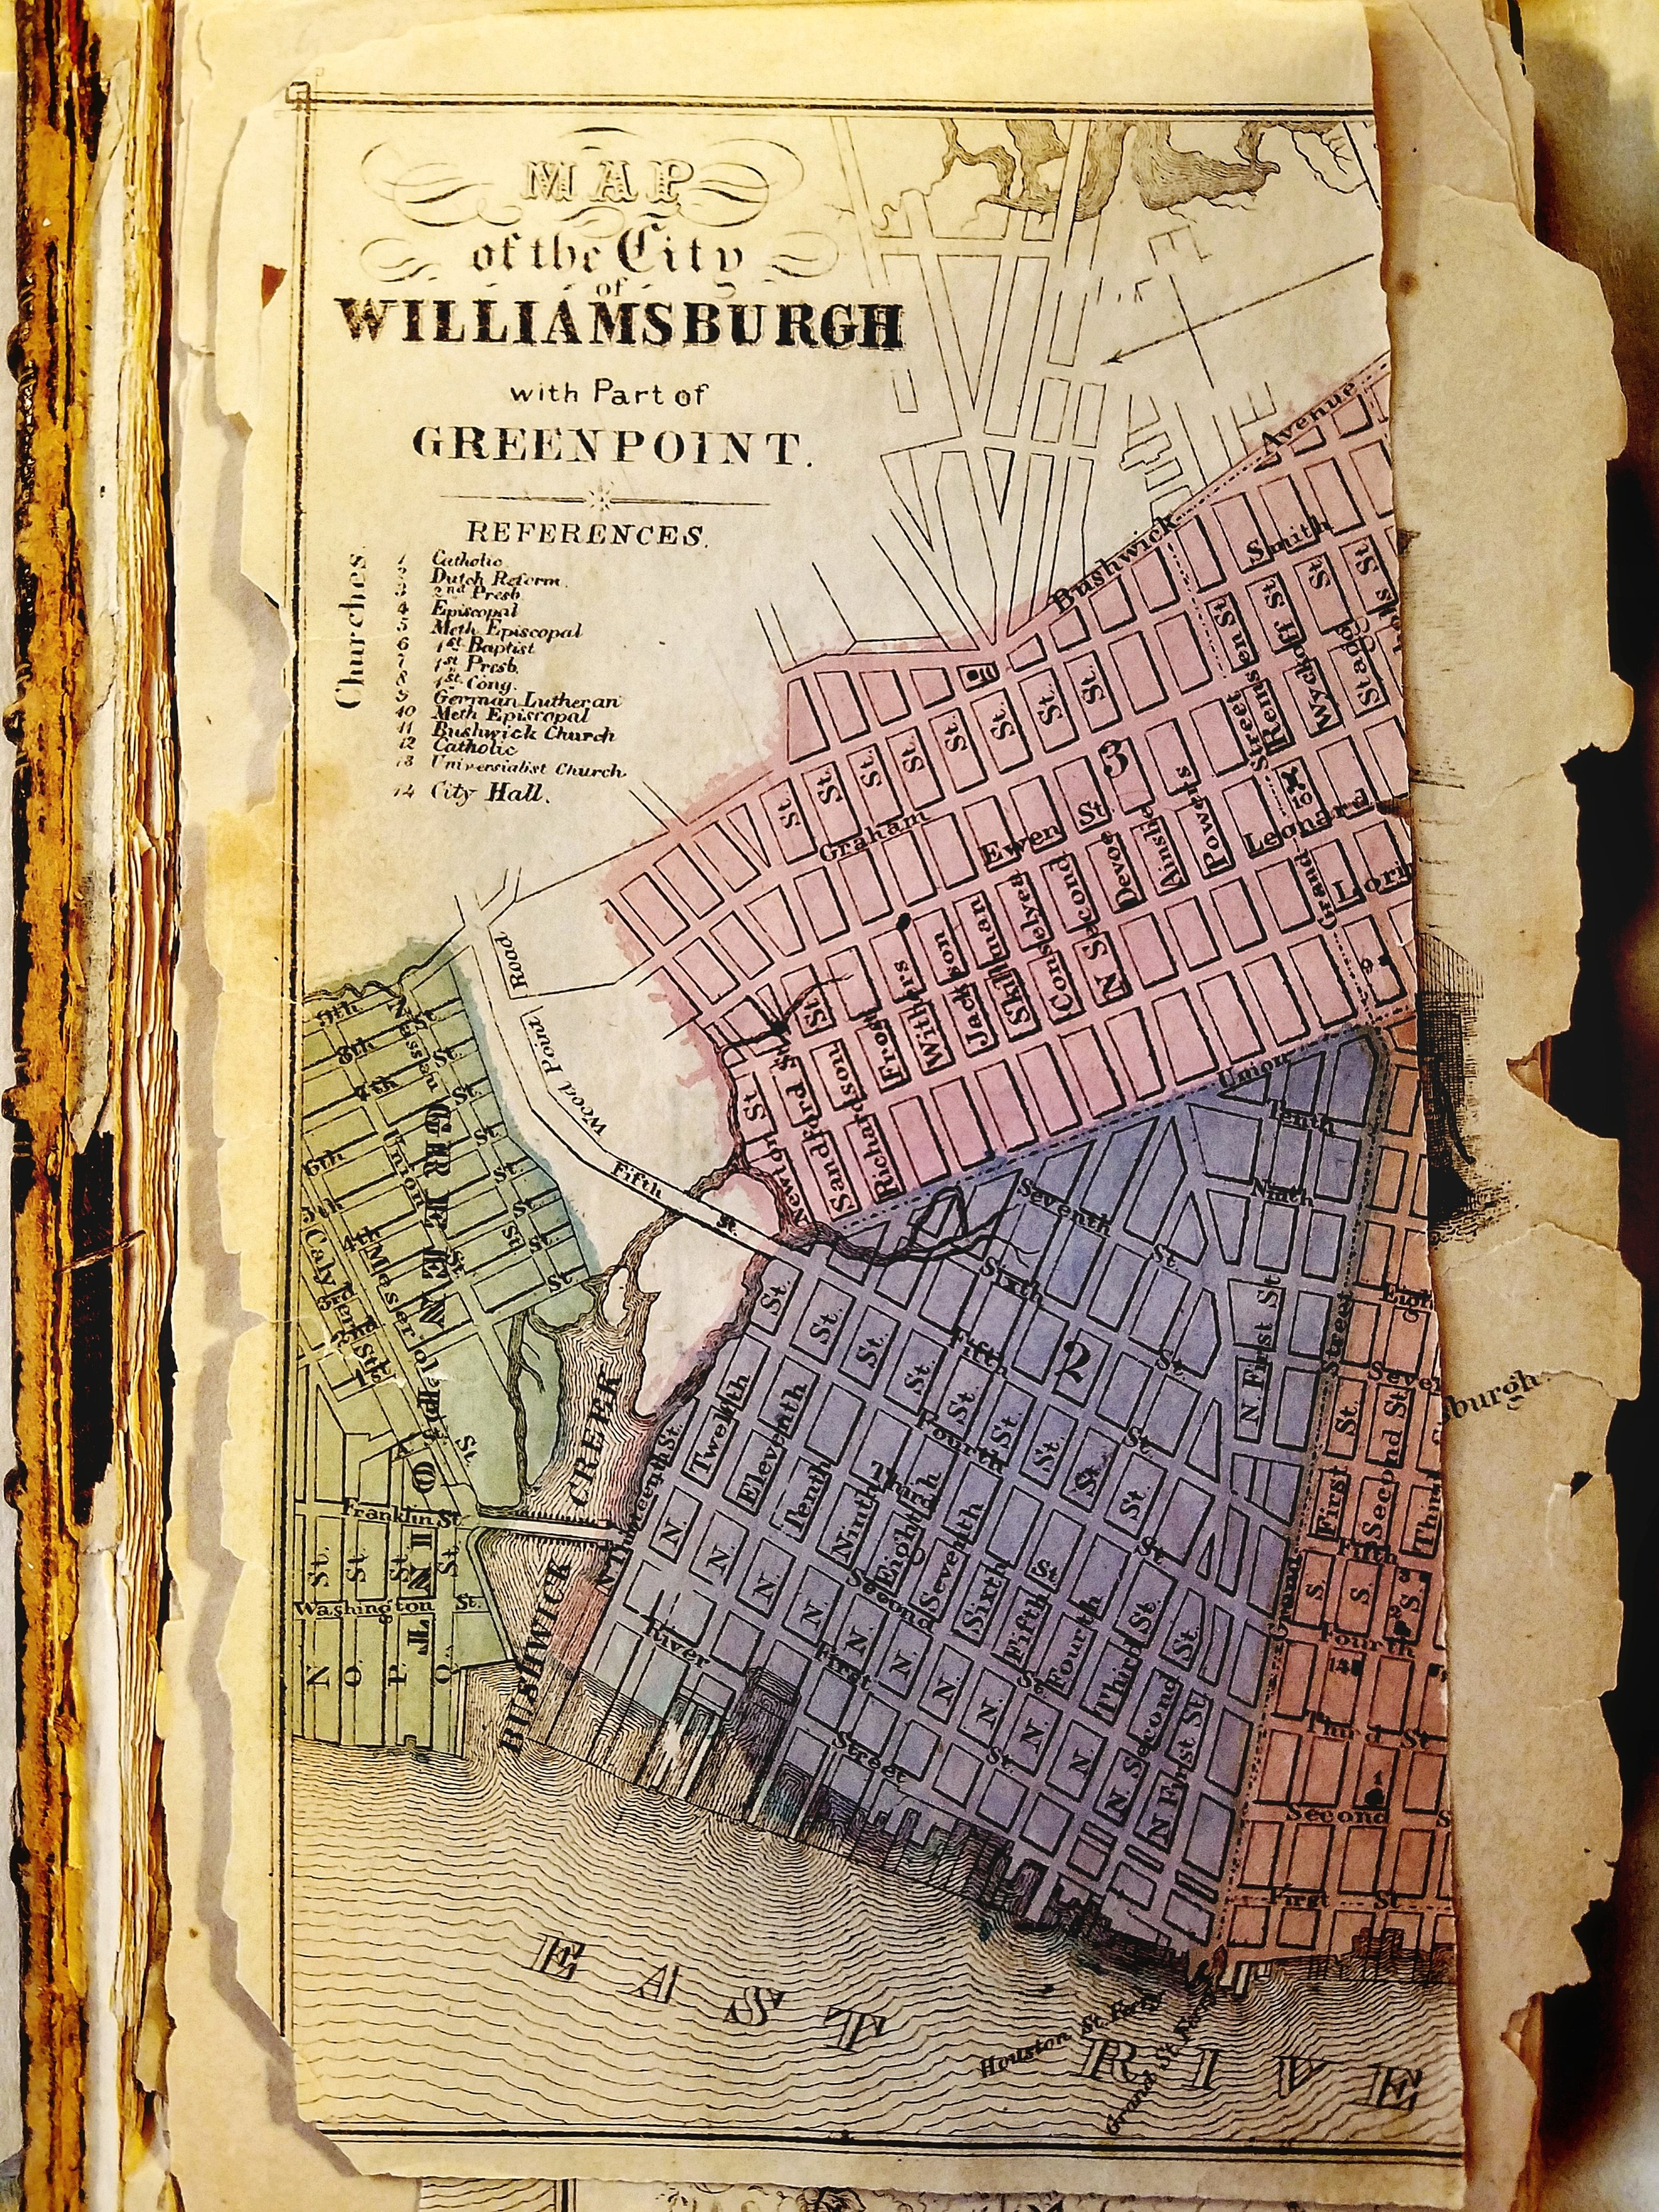 Map of Williamsburgh, Kings County, 1852.